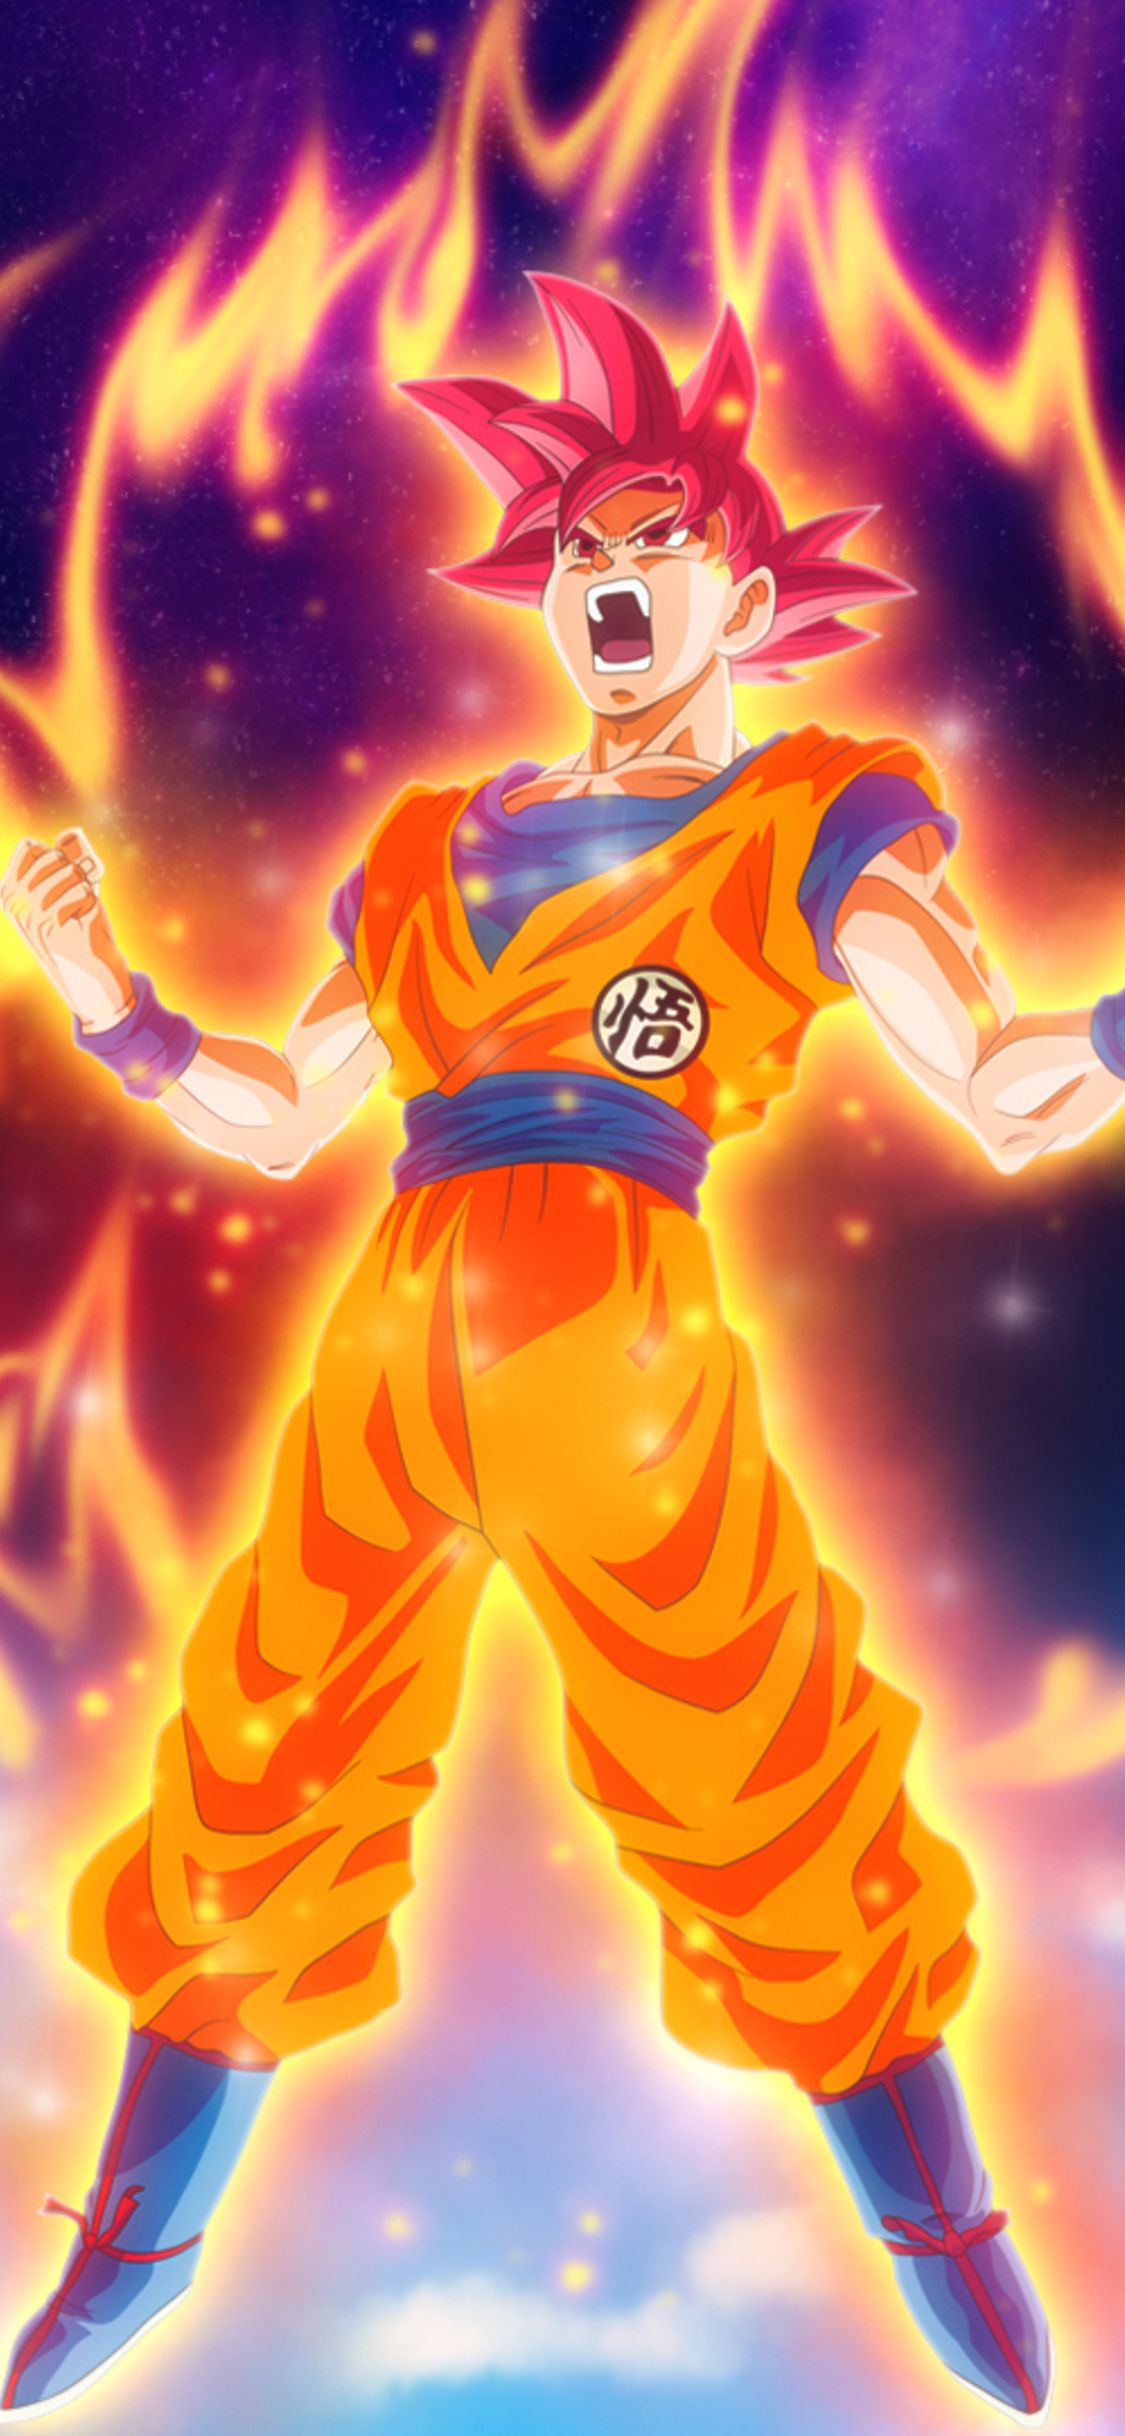 1125x2436 Dragon Ball Z Goku Iphone Xs Iphone 10 Iphone X Hd 4k Wallpapers Images Dragon Ball Wallpaper Iphone Dragon Ball Wallpapers Dragon Ball Super Manga